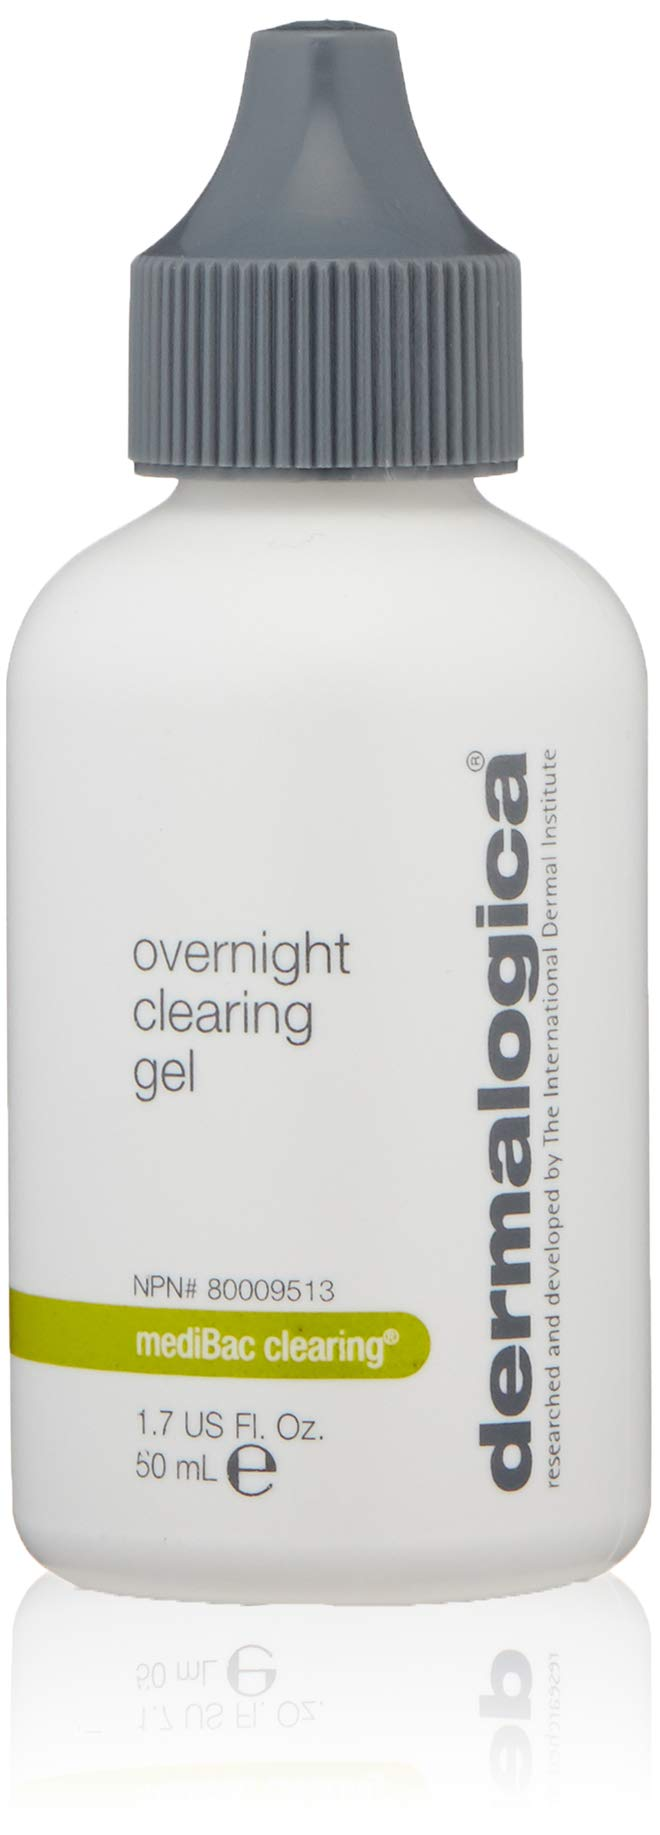 Dermalogica Overnight Clearing Gel, 1.7 Fl Oz